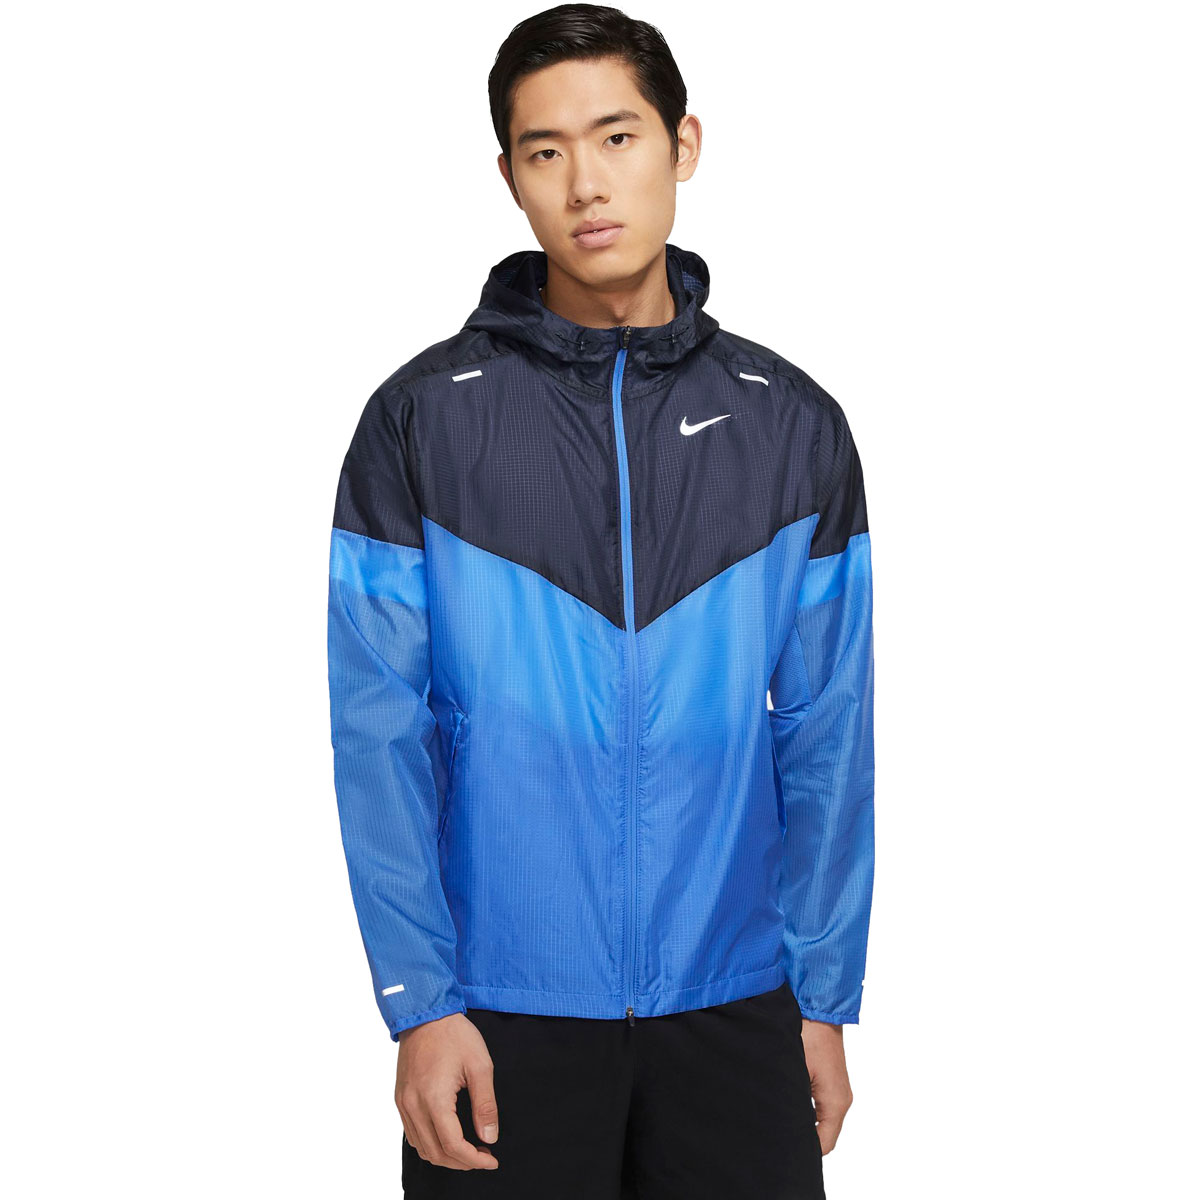 Men's Nike Windrunner Running Jacket - Color: Pacific Blue/Obsidian/Reflective Silver - Size: S, Pacific Blue/Obsidian/Reflective Silver, large, image 1